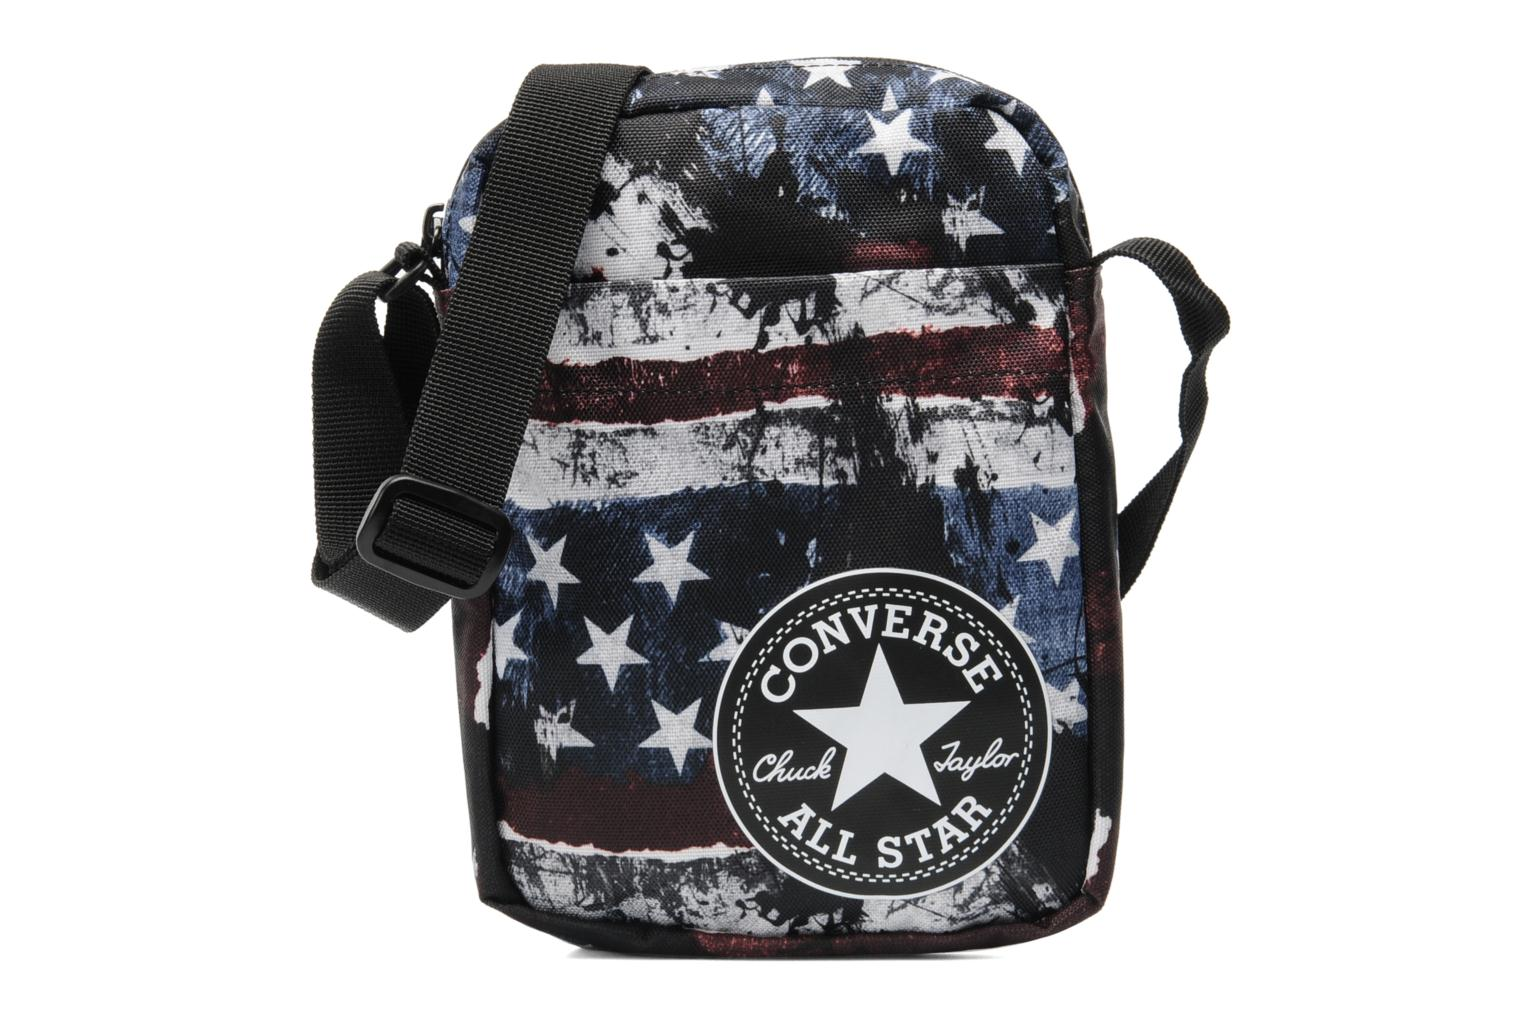 Playbook City bag by Converse